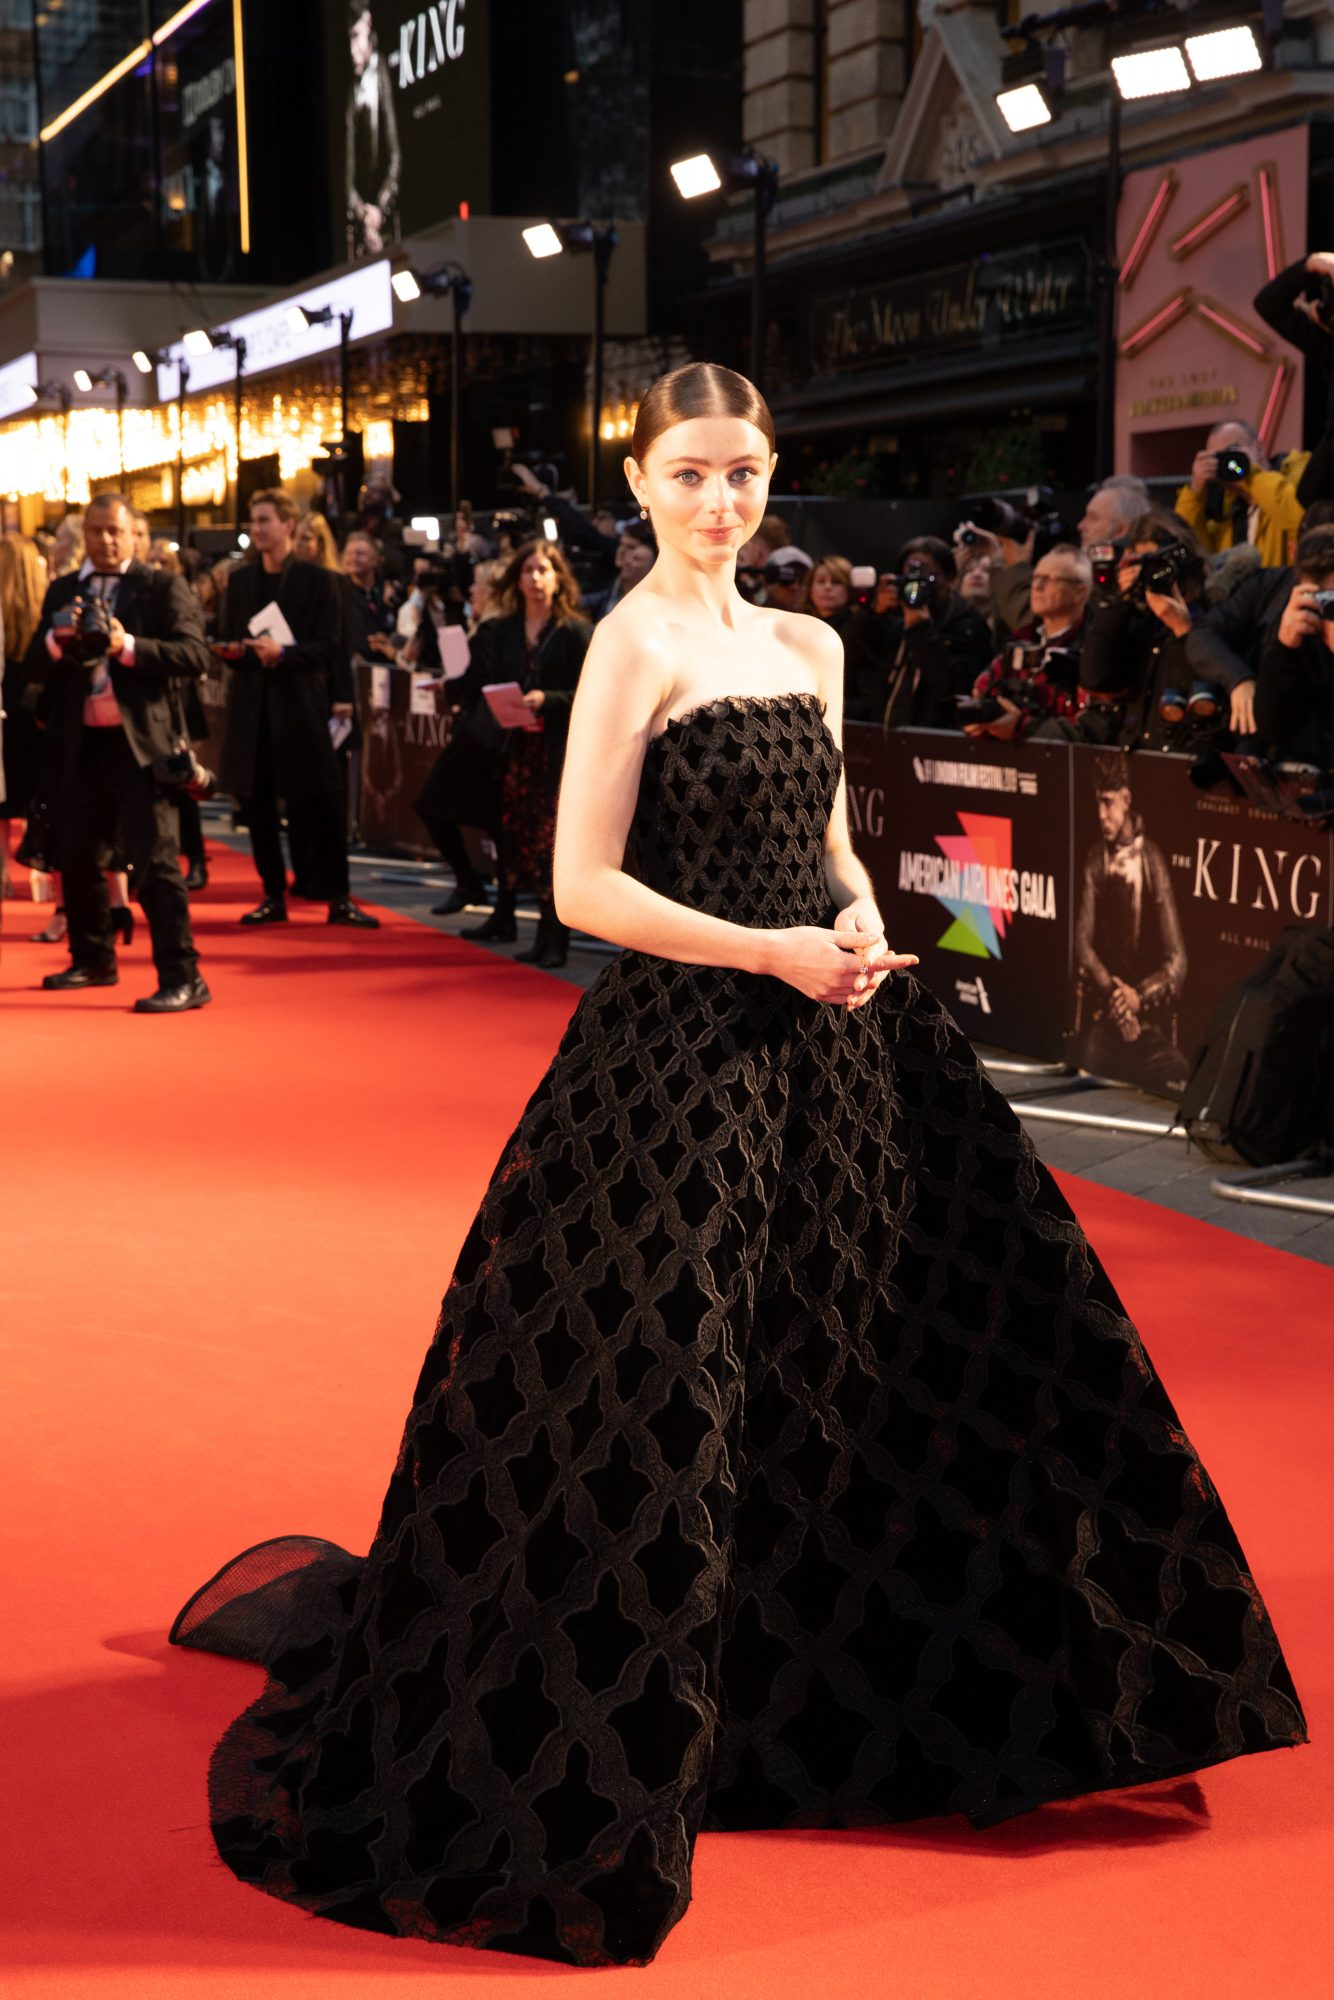 Thomasin Harcourt McKenzie at The King UK Premiere during the 63rd BFI London Film Festival at Odeon Luxe Leicester Square on 3rd October 2019.  Photos: Netflix